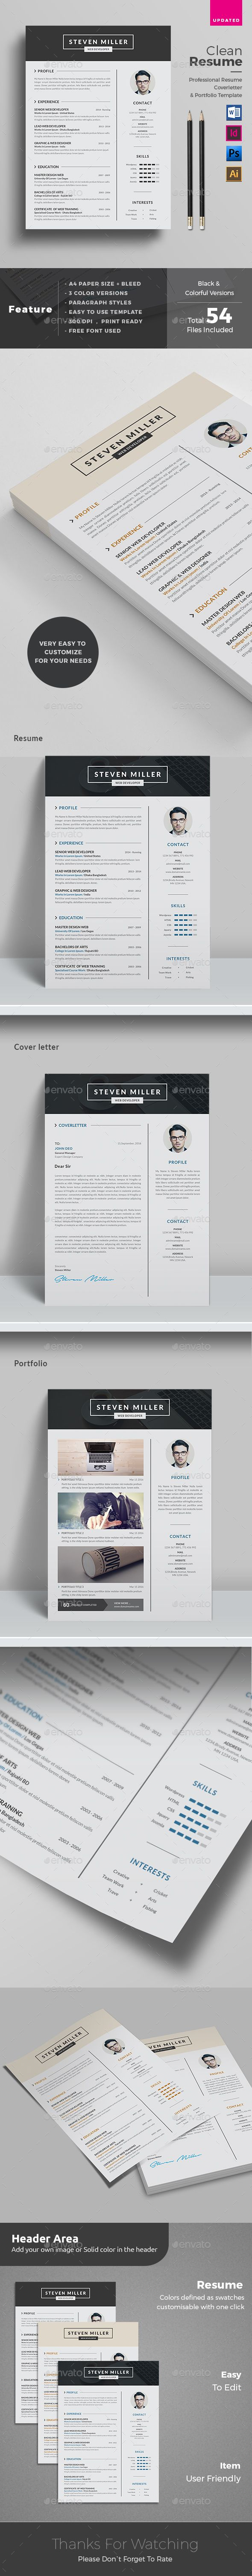 Resume Templates Word Free Excel  Best Resume Templates Images On Pinterest Computer Skills Resume Example with Claims Adjuster Resume Word Resume Geology Resume Excel